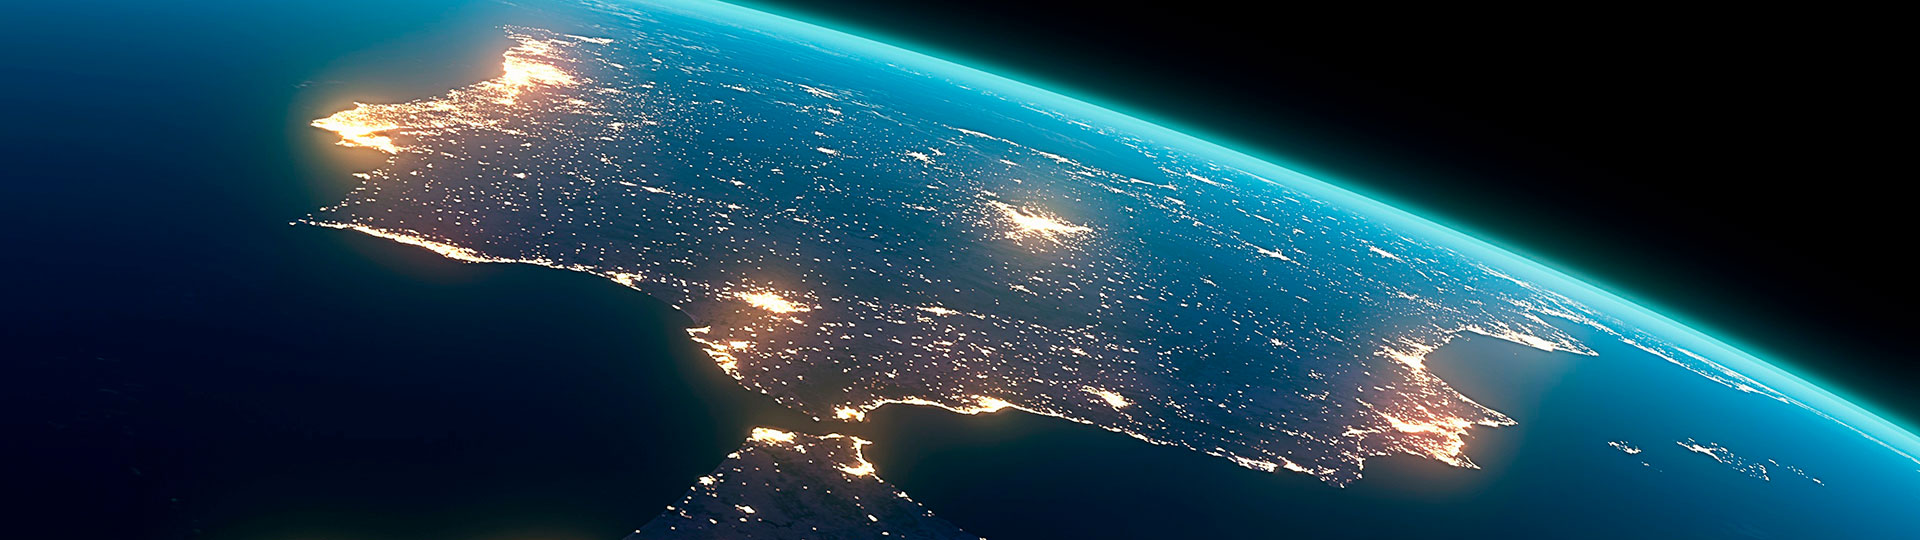 The Iberian Peninsula from space